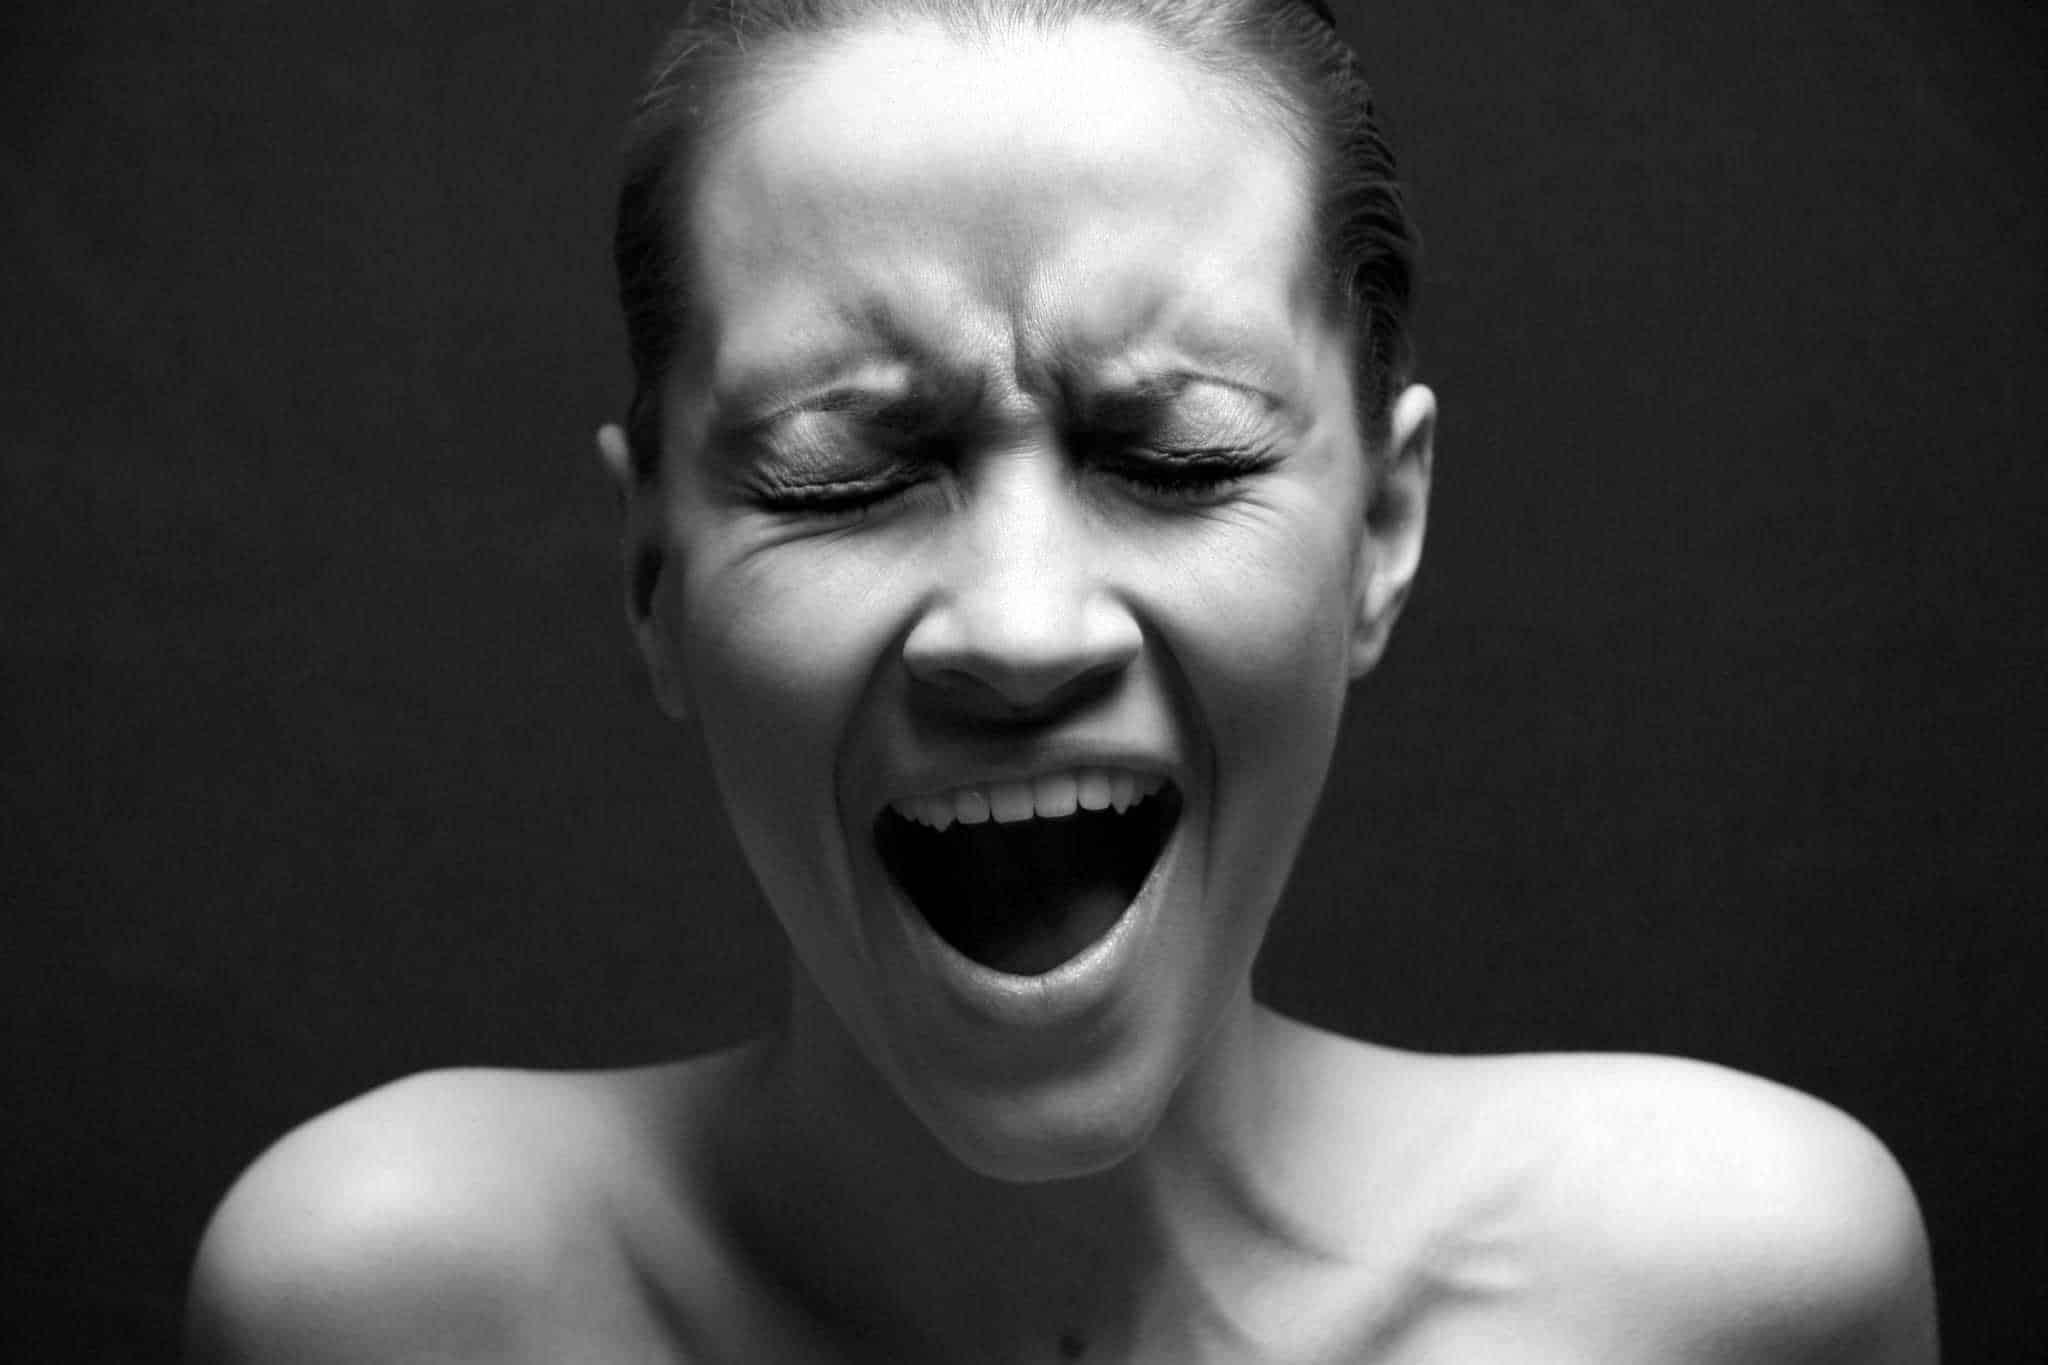 Battered Woman Syndrome